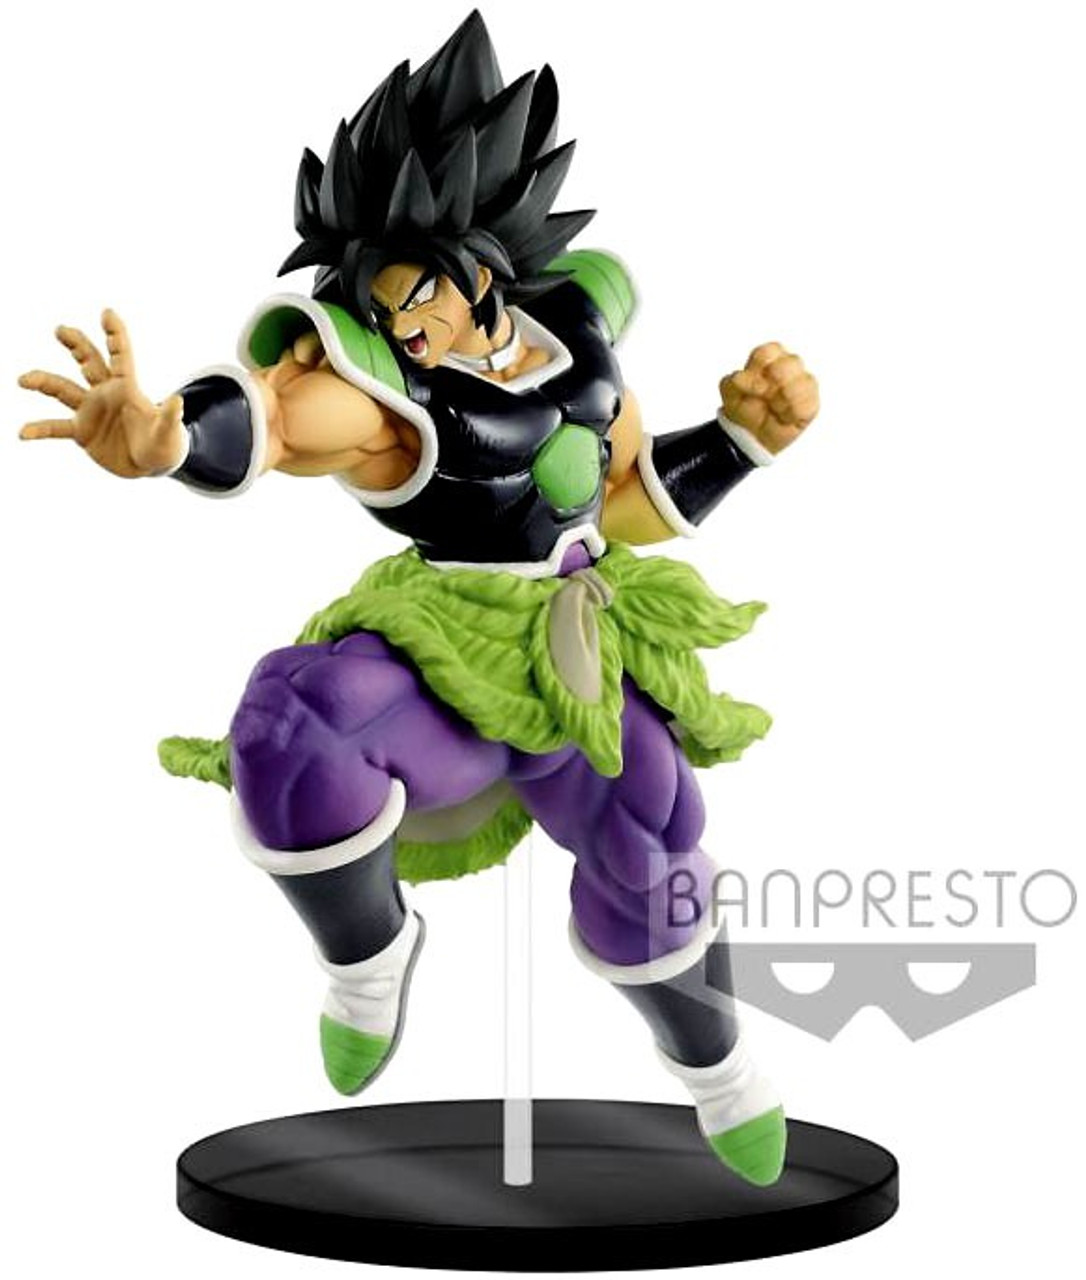 Dragon Ball Super Broly Movie Ultimate Soldiers Broly 9 Inch Collectible Pvc Figure 01 Rage Mode